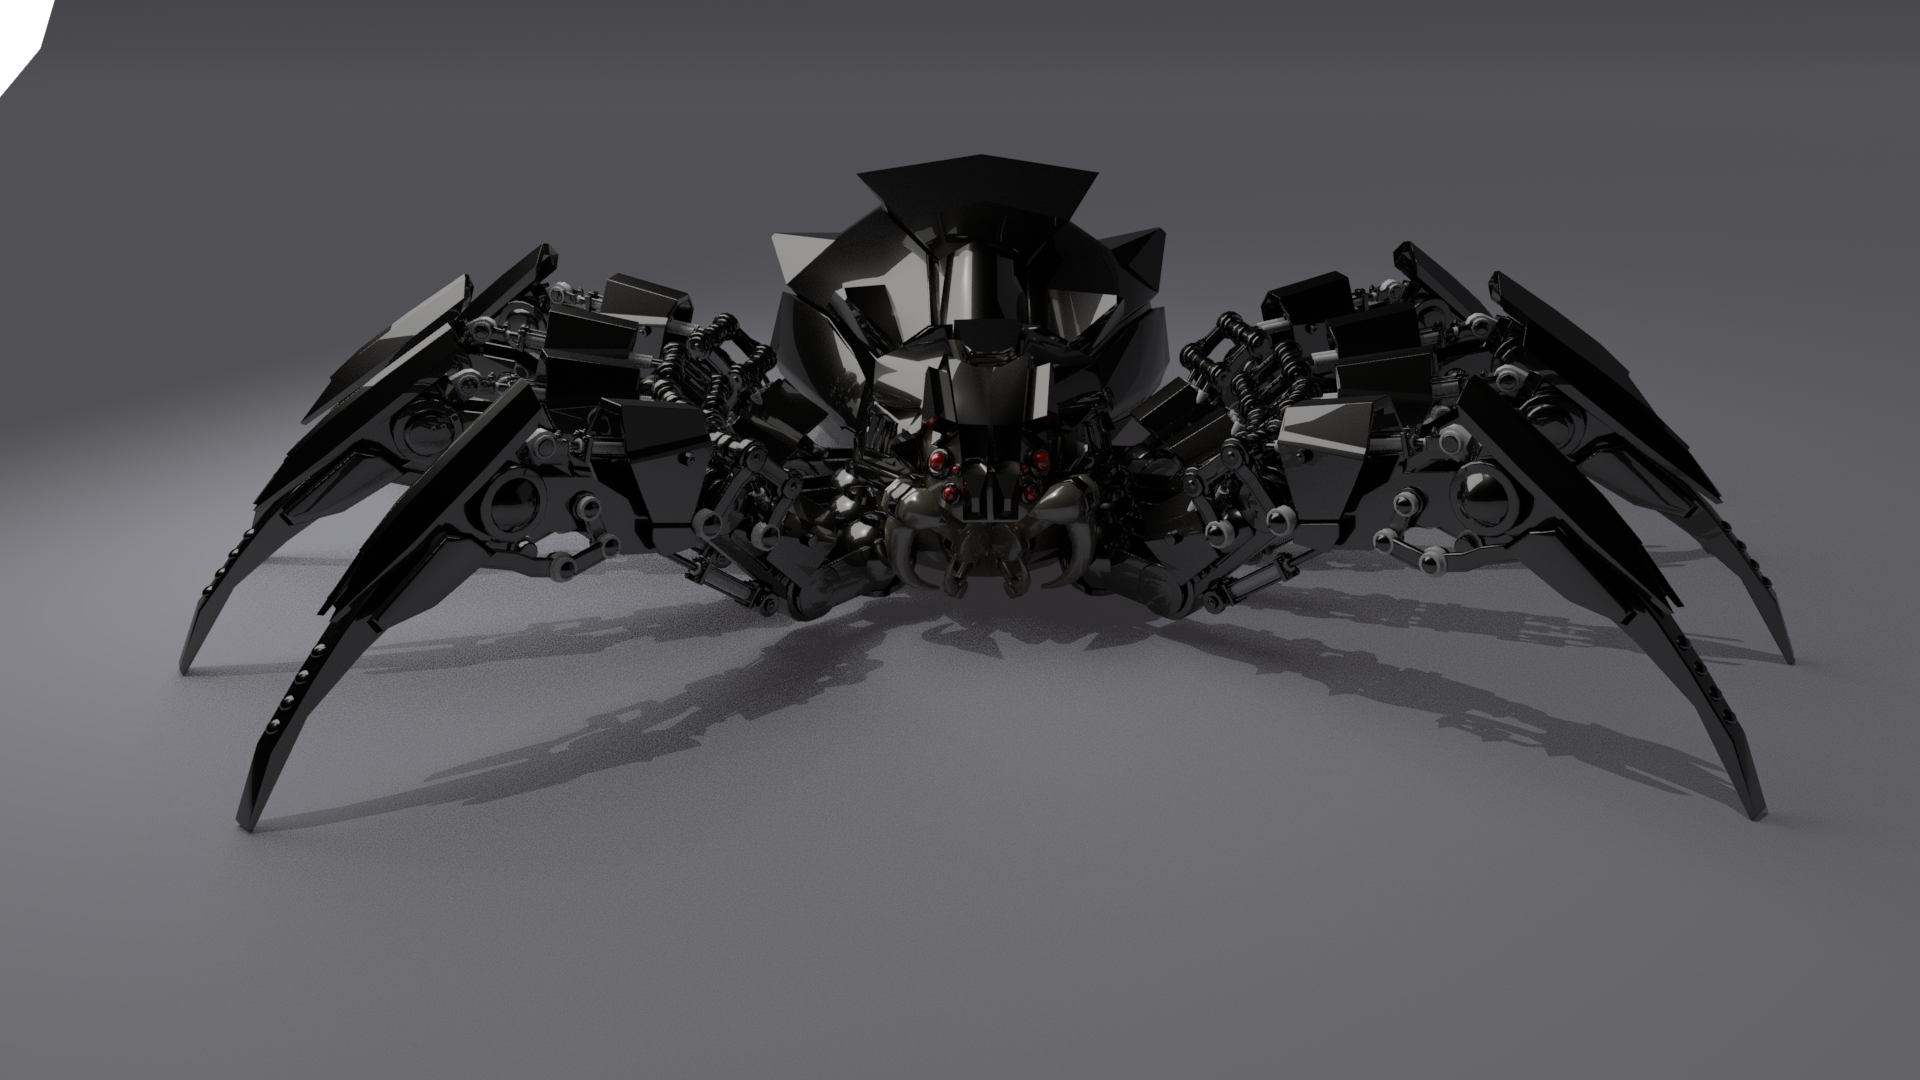 Copy of Security spider in pose